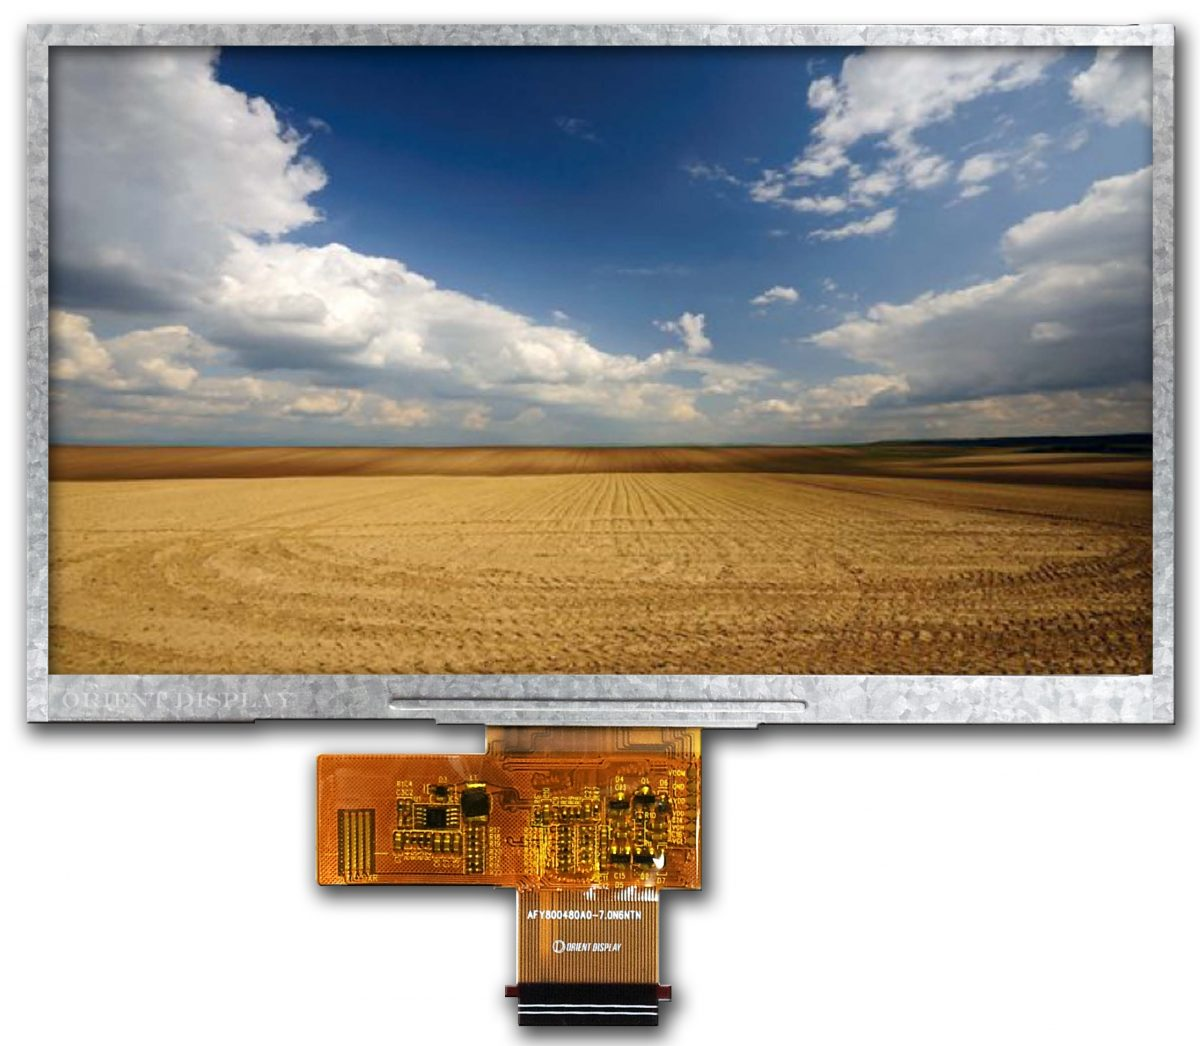 Orient Display: Color TFT/Thin Film Transistor LCD, 7.0 inch 800*480 TFT LCD Display with FPC connection